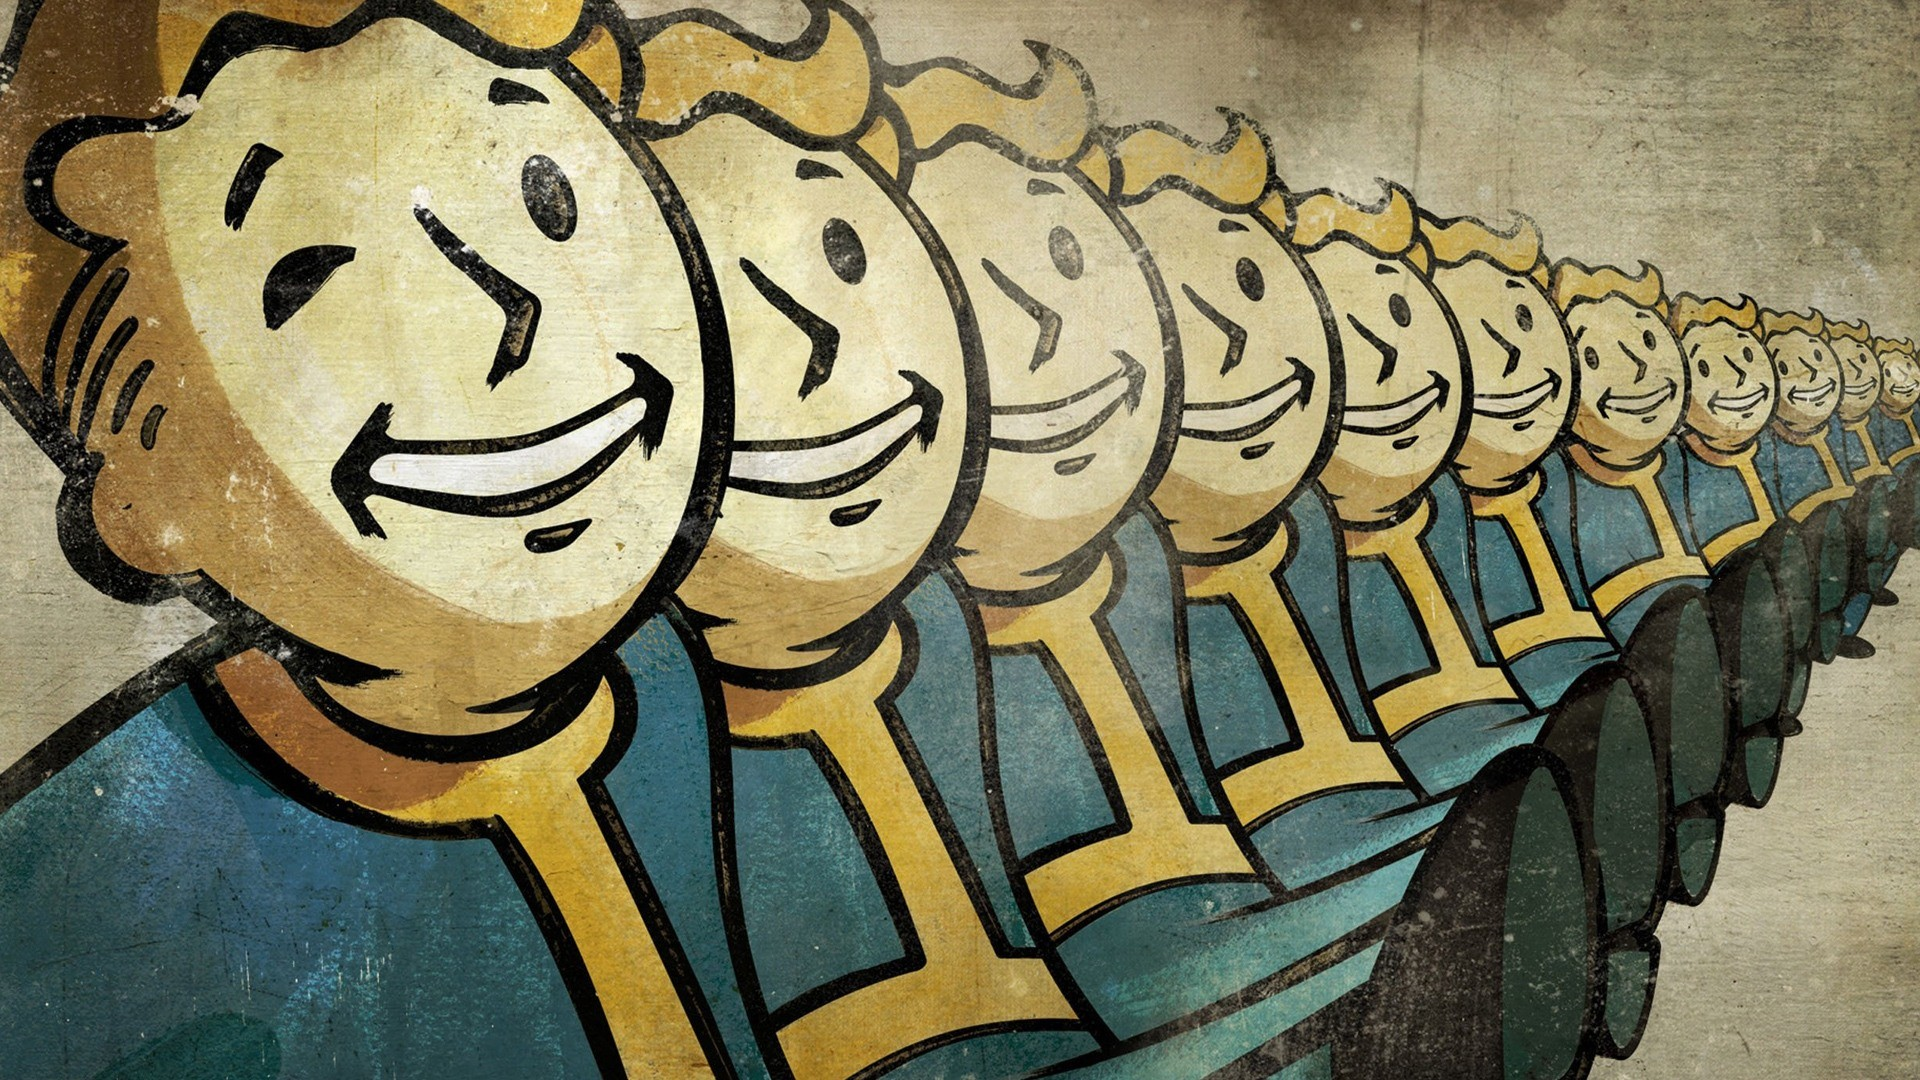 Wallpaper fallout online, fallout, 2015, interplay entertainment  corp